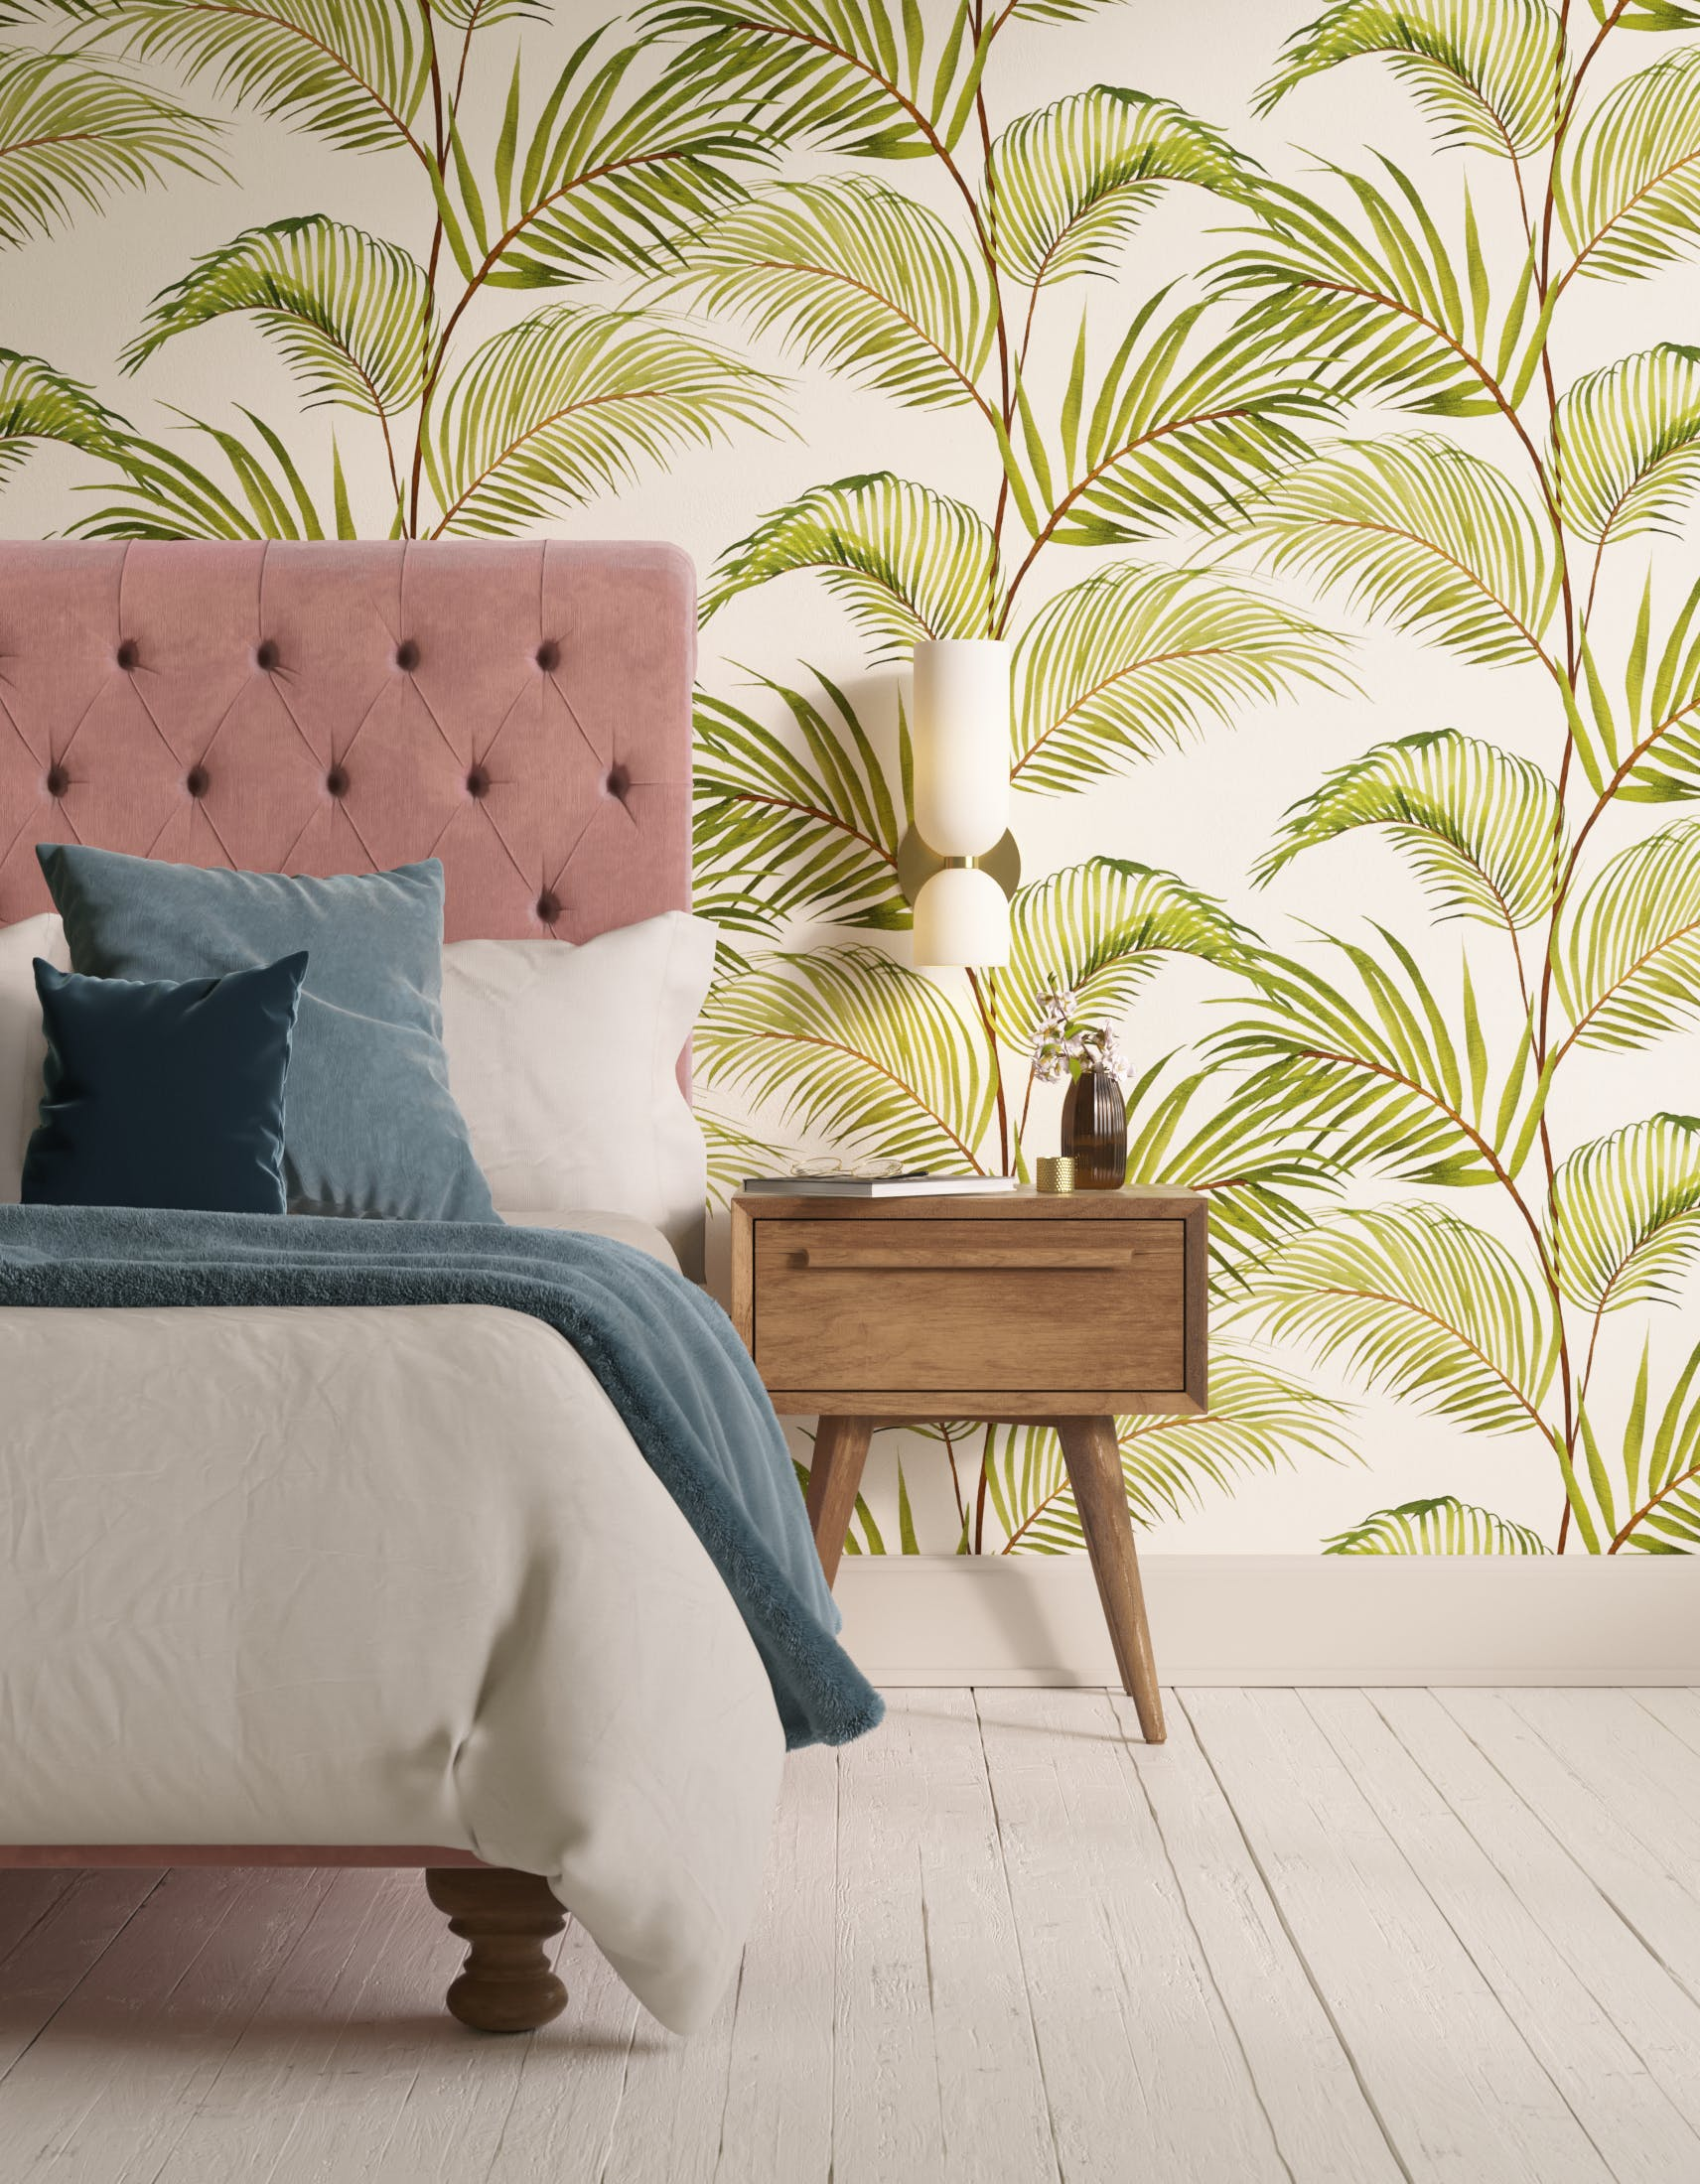 Bedroom decorated with Lick x Belinda Bayley Jungle 03 white and green palm leaf wallpaper